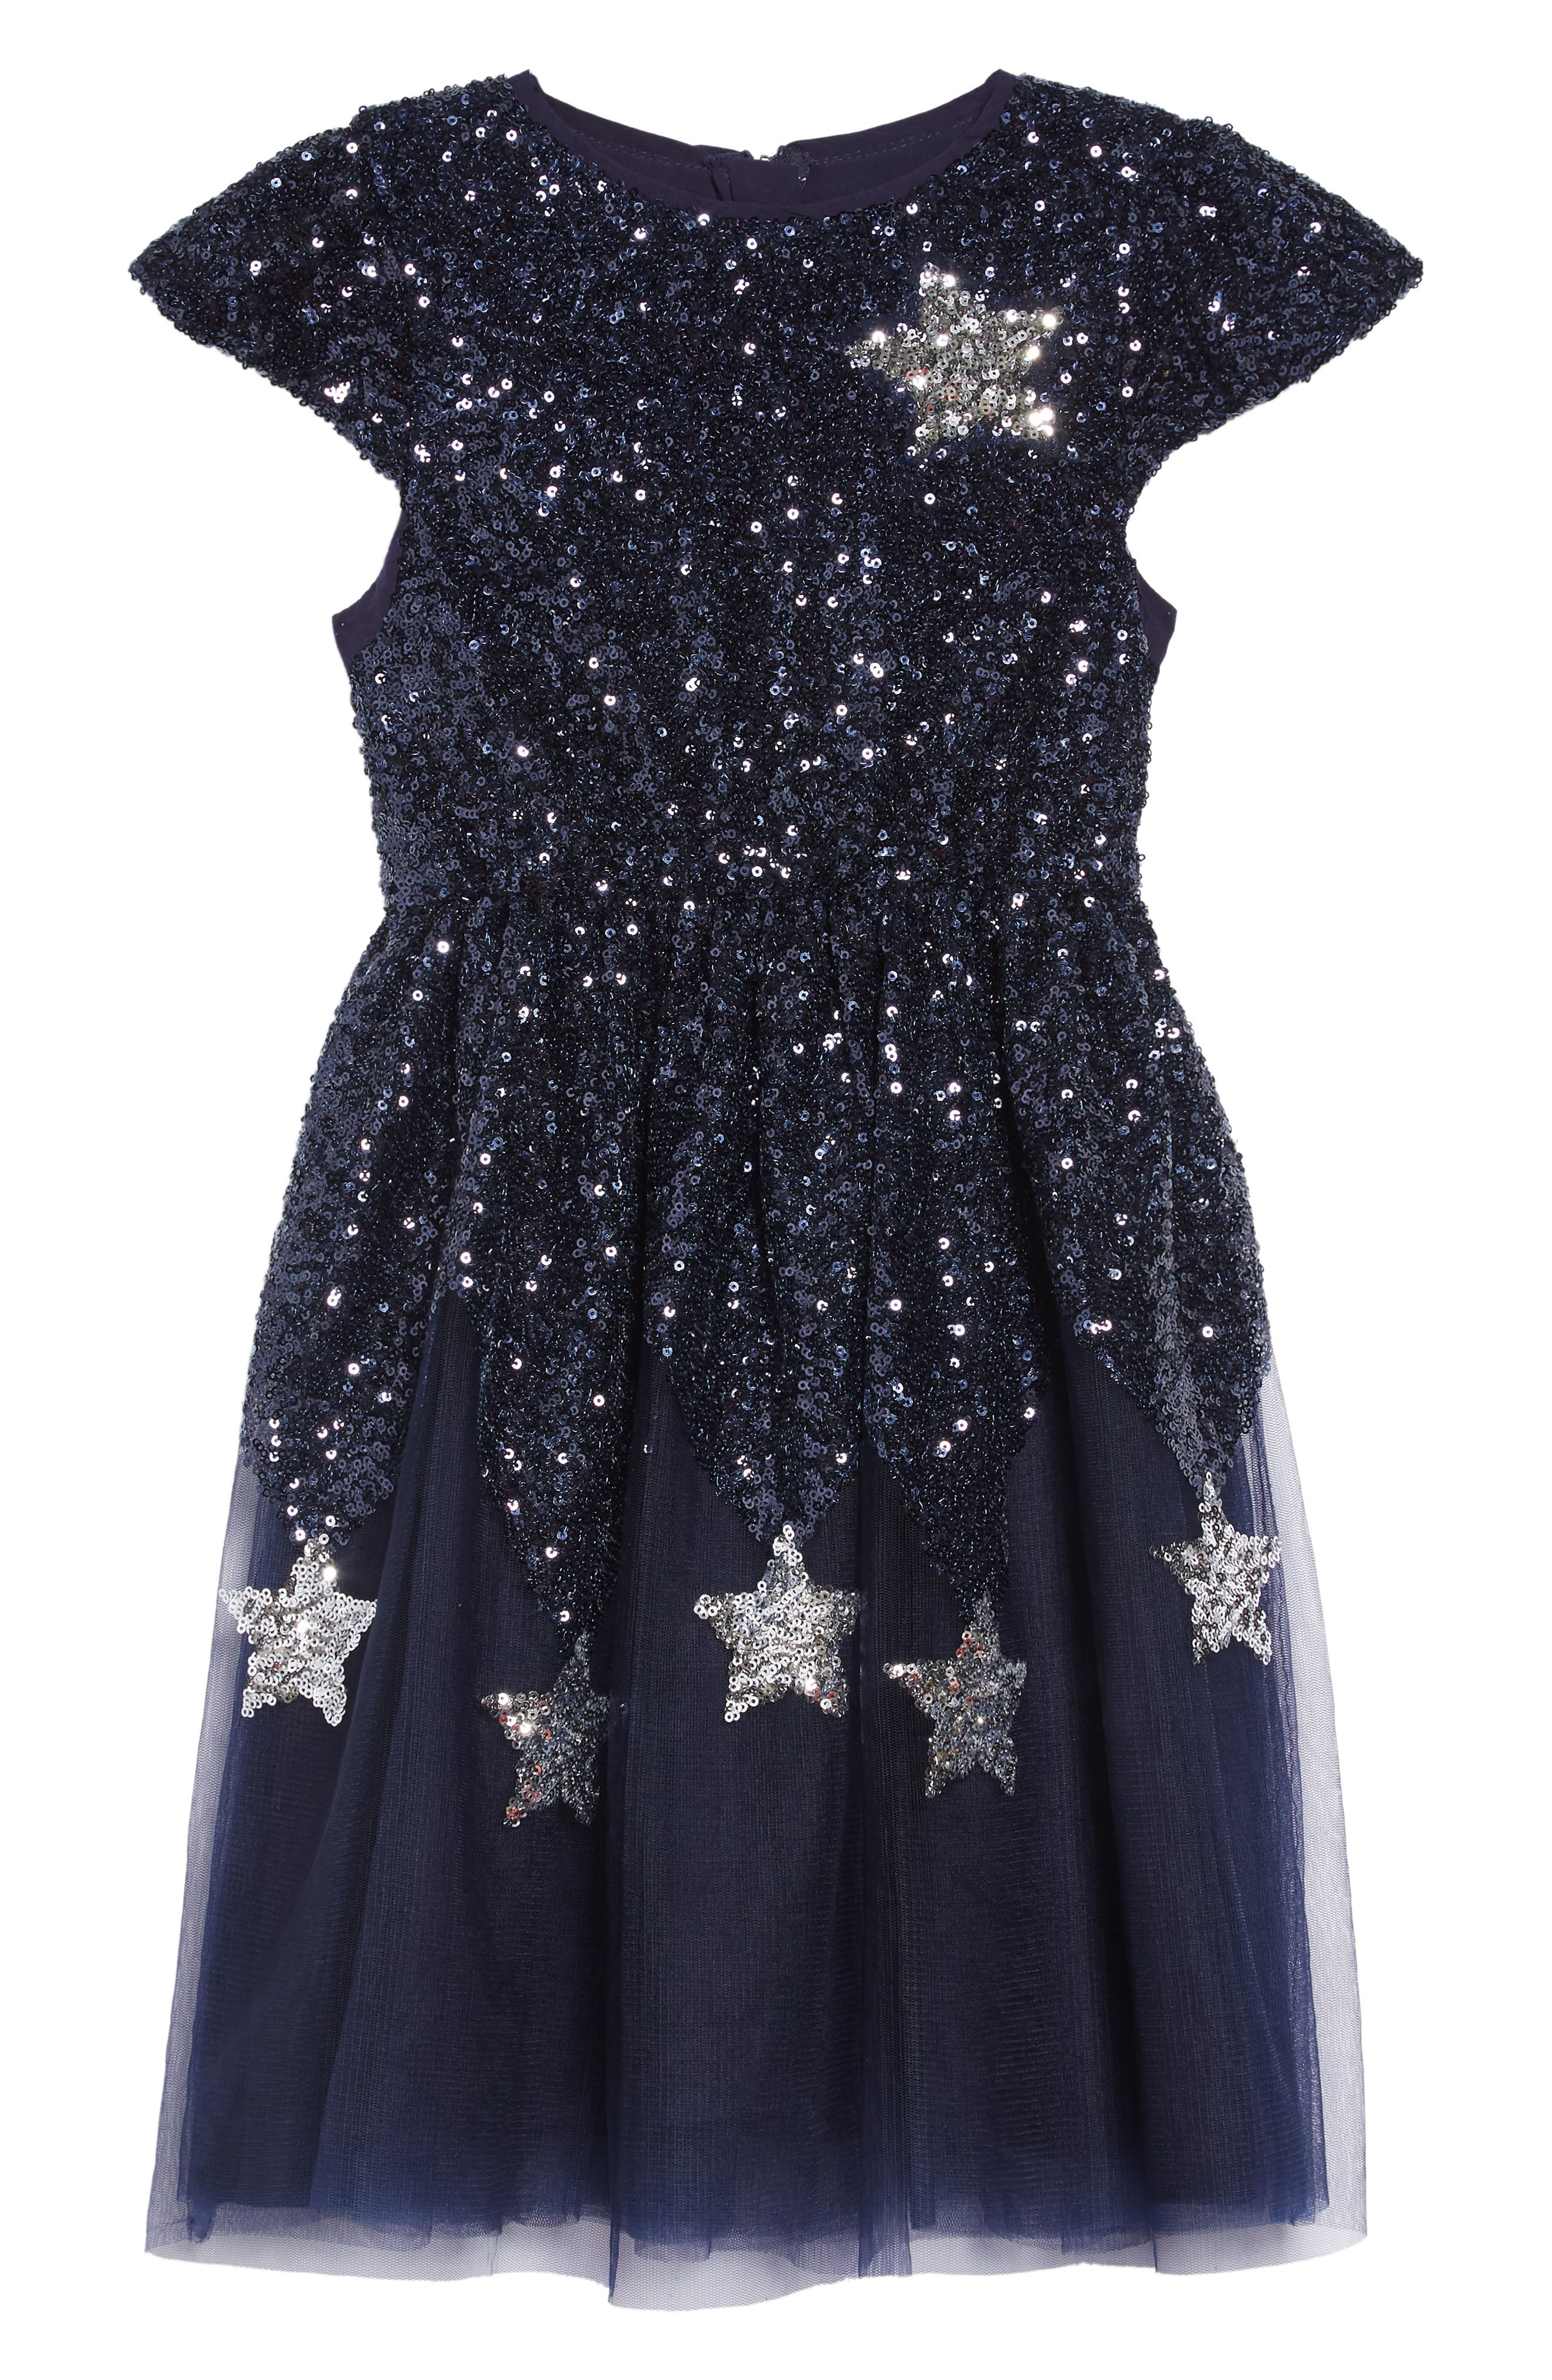 Star Sequin Tulle Dress,                             Main thumbnail 1, color,                             NAVY